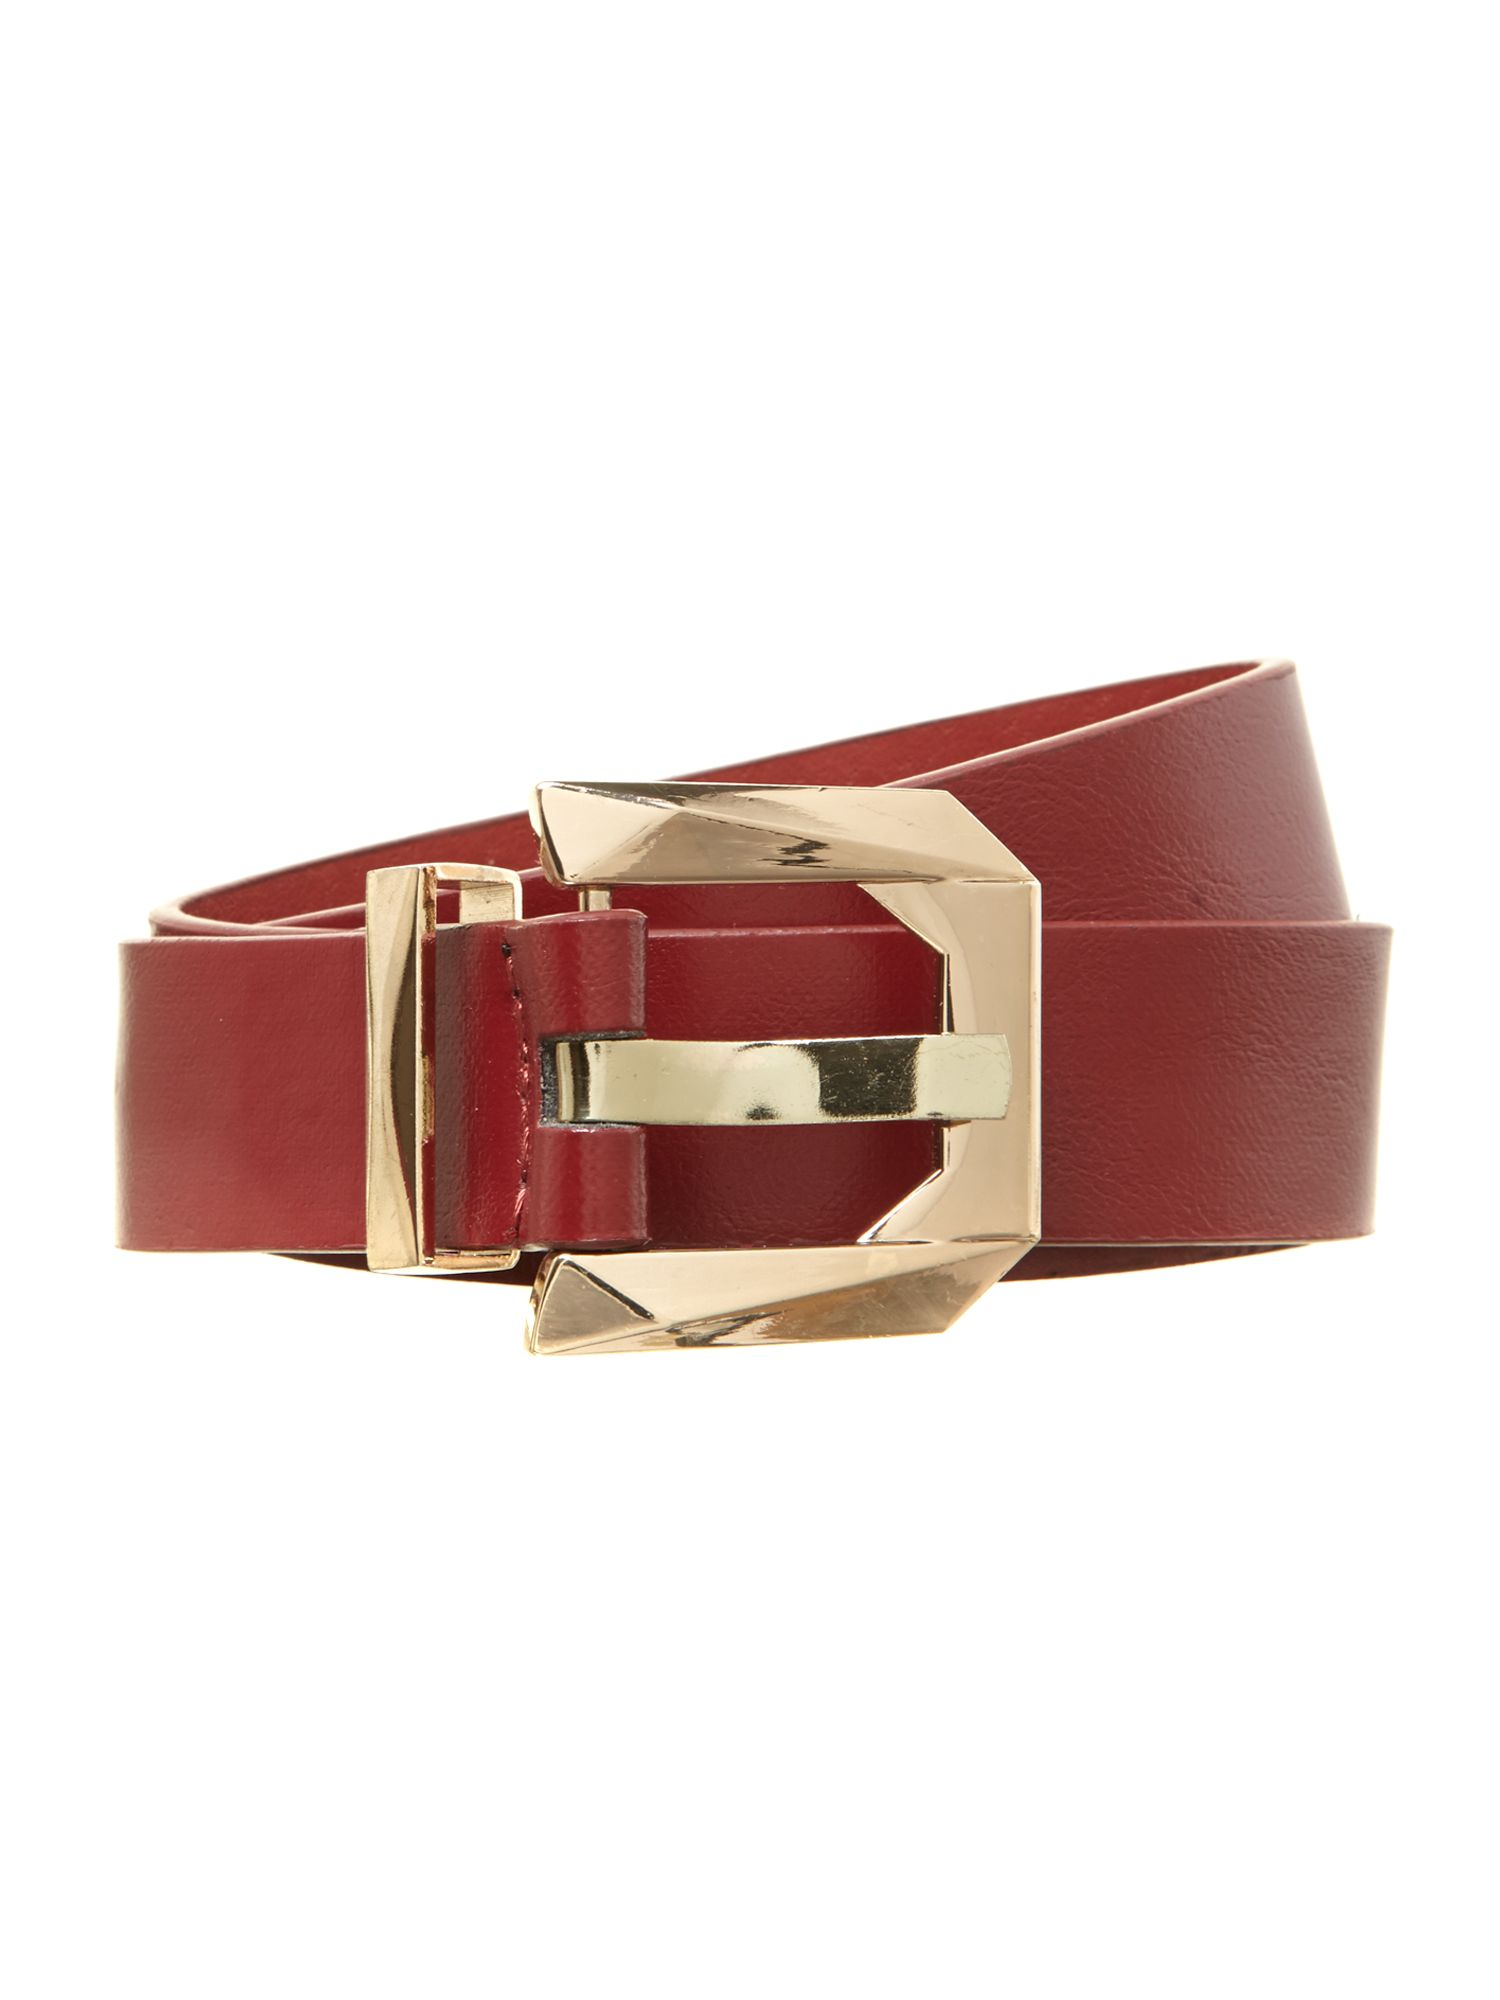 Shaped buckle belt